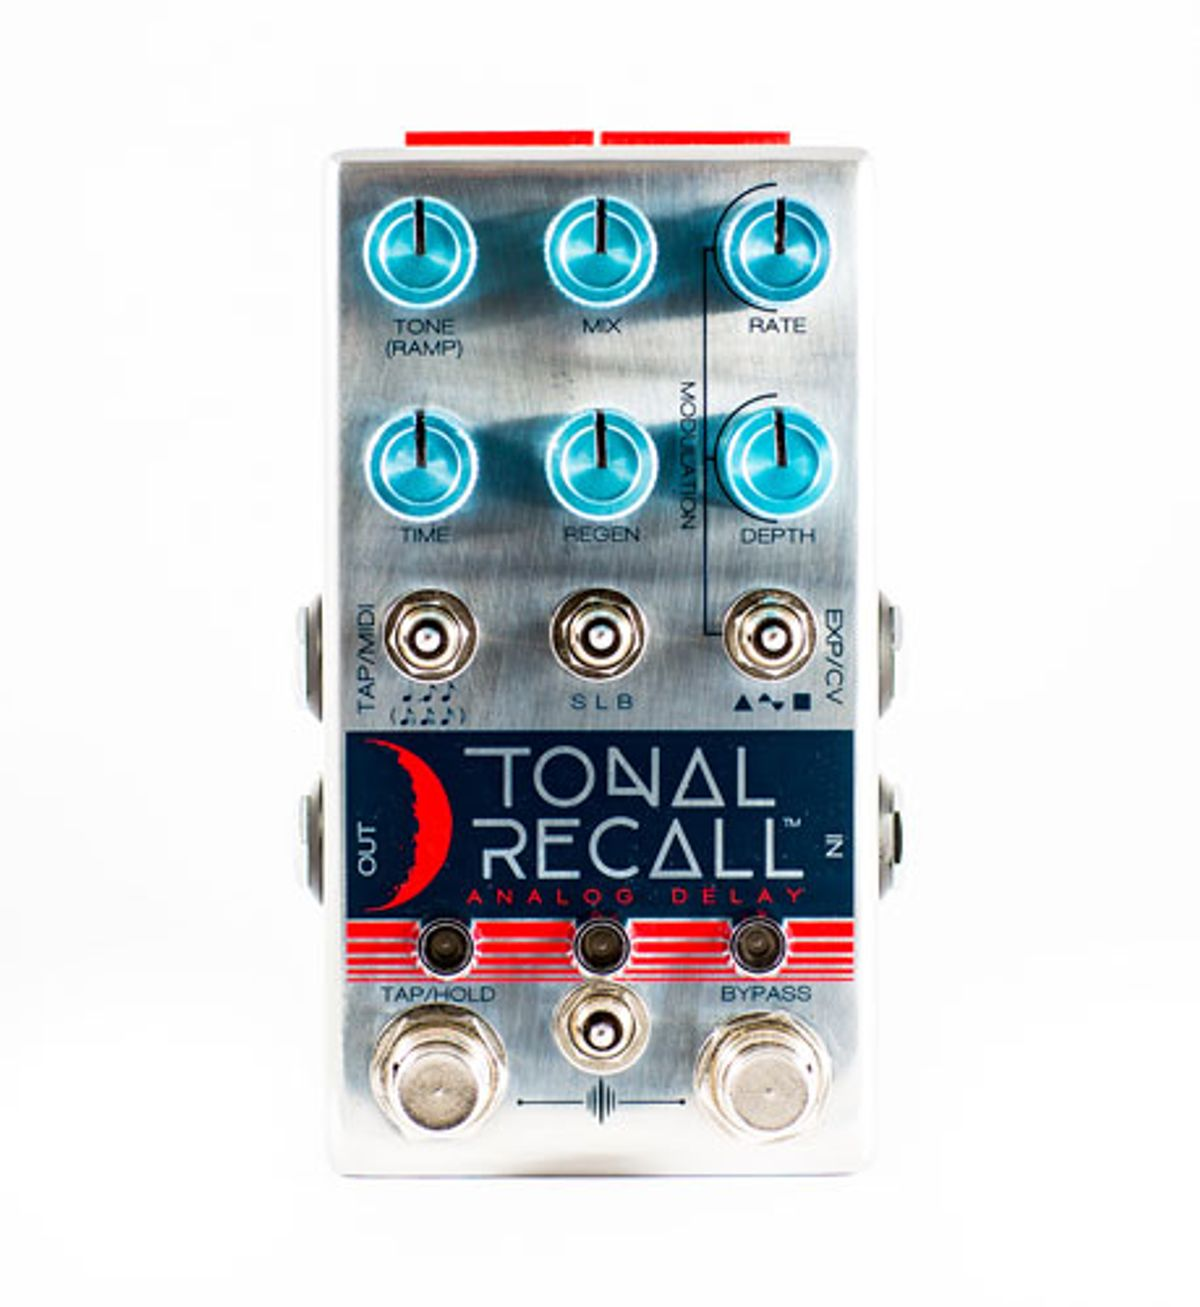 Chase Bliss Audio Announces the Tonal Recall